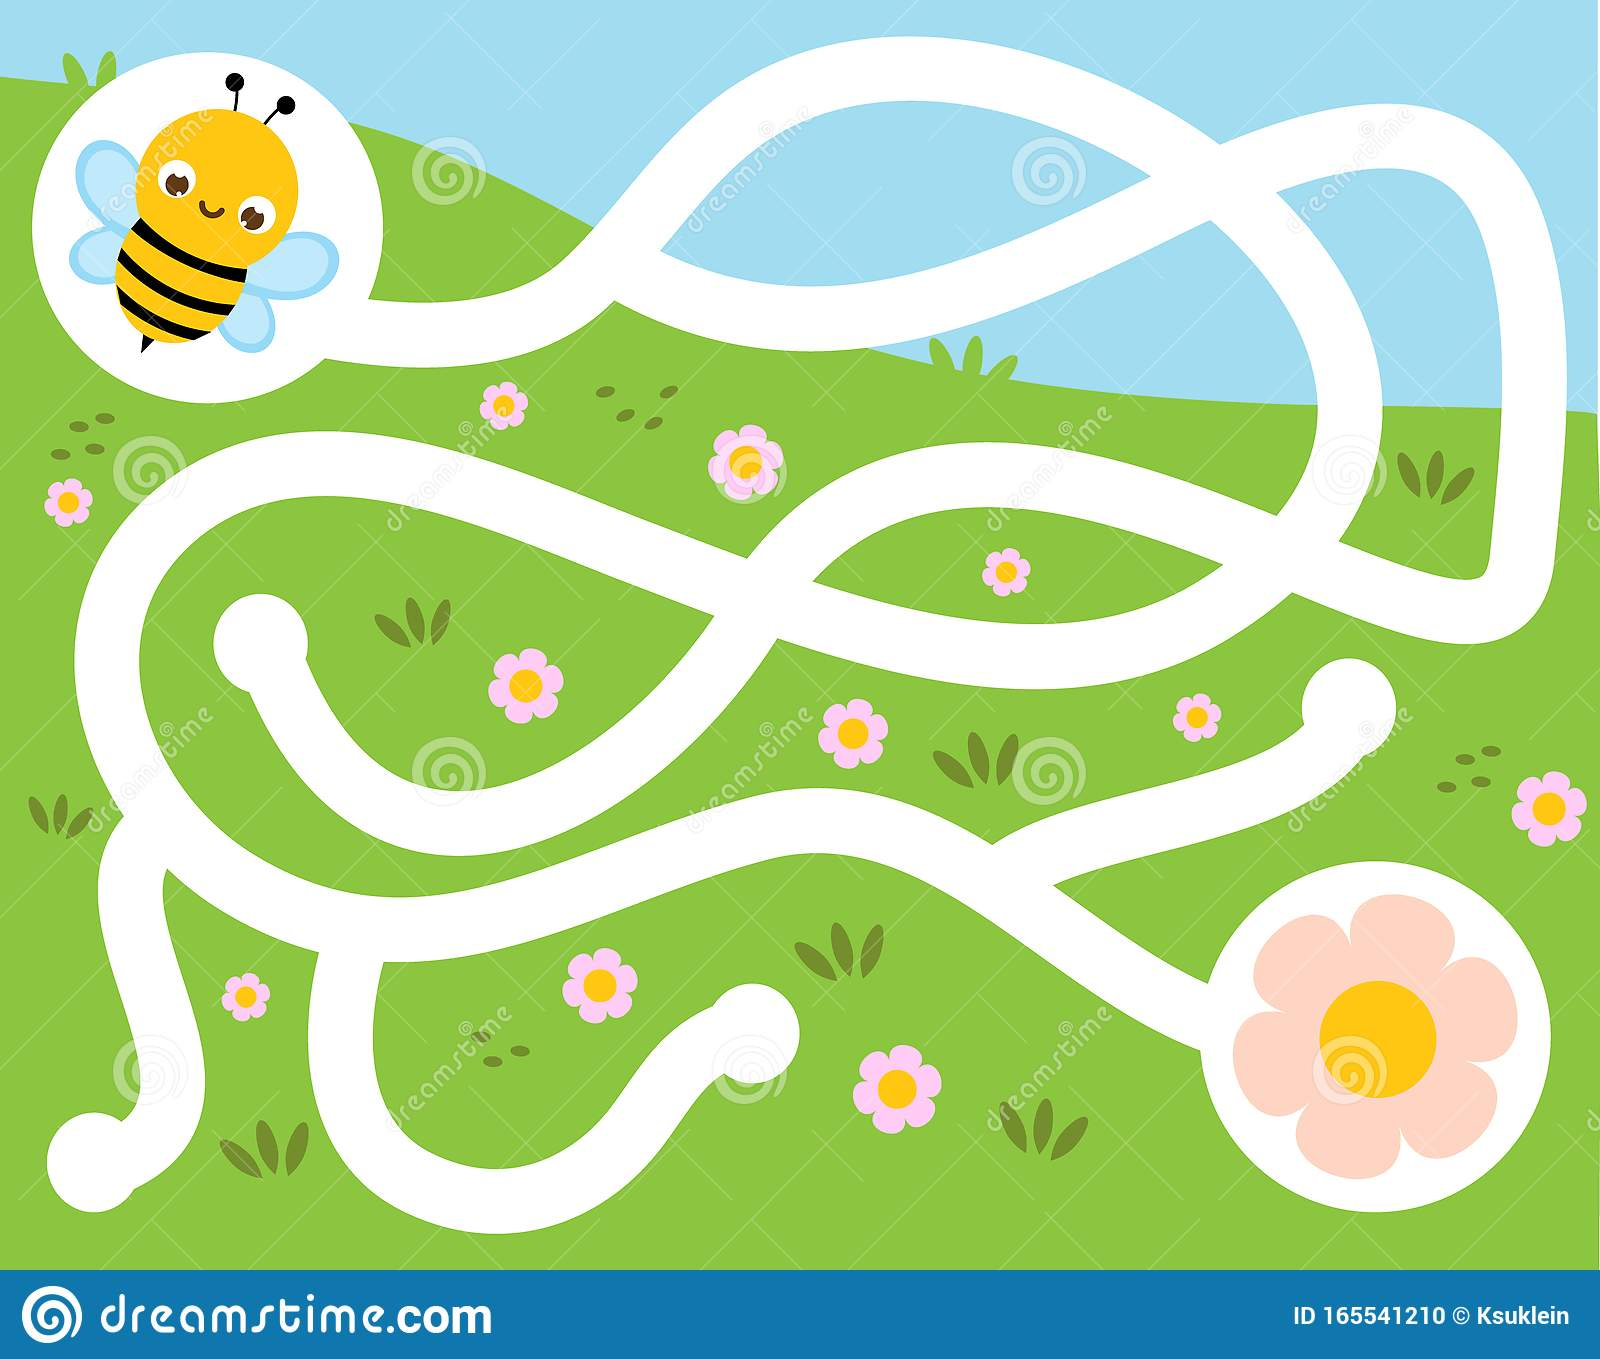 Maze Puzzle Help Bee Find Flower Activity For And Kids